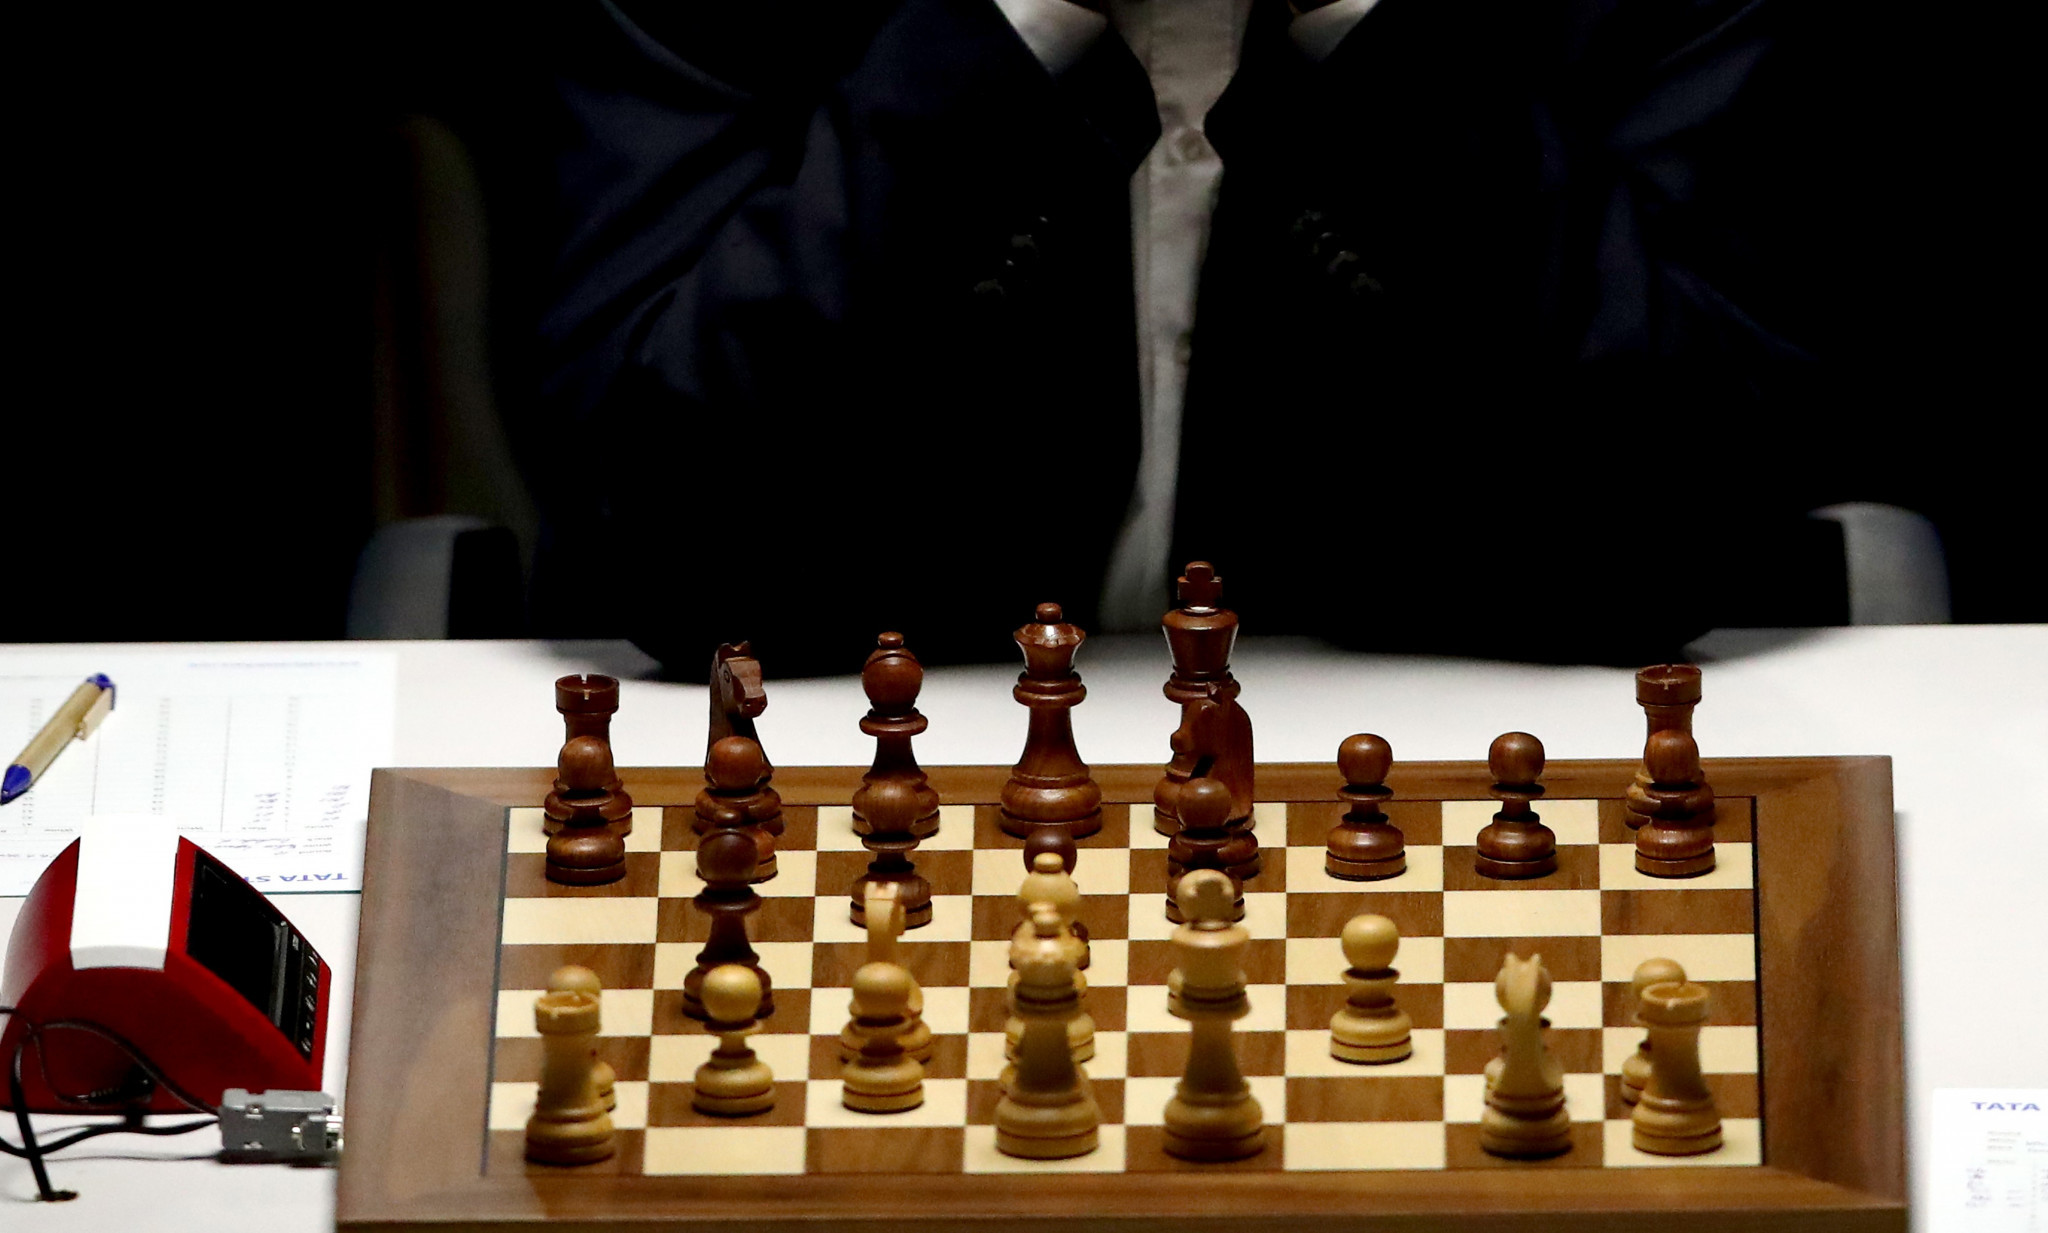 Keymer joins European Individual Chess Championship leaders on 6.5 points